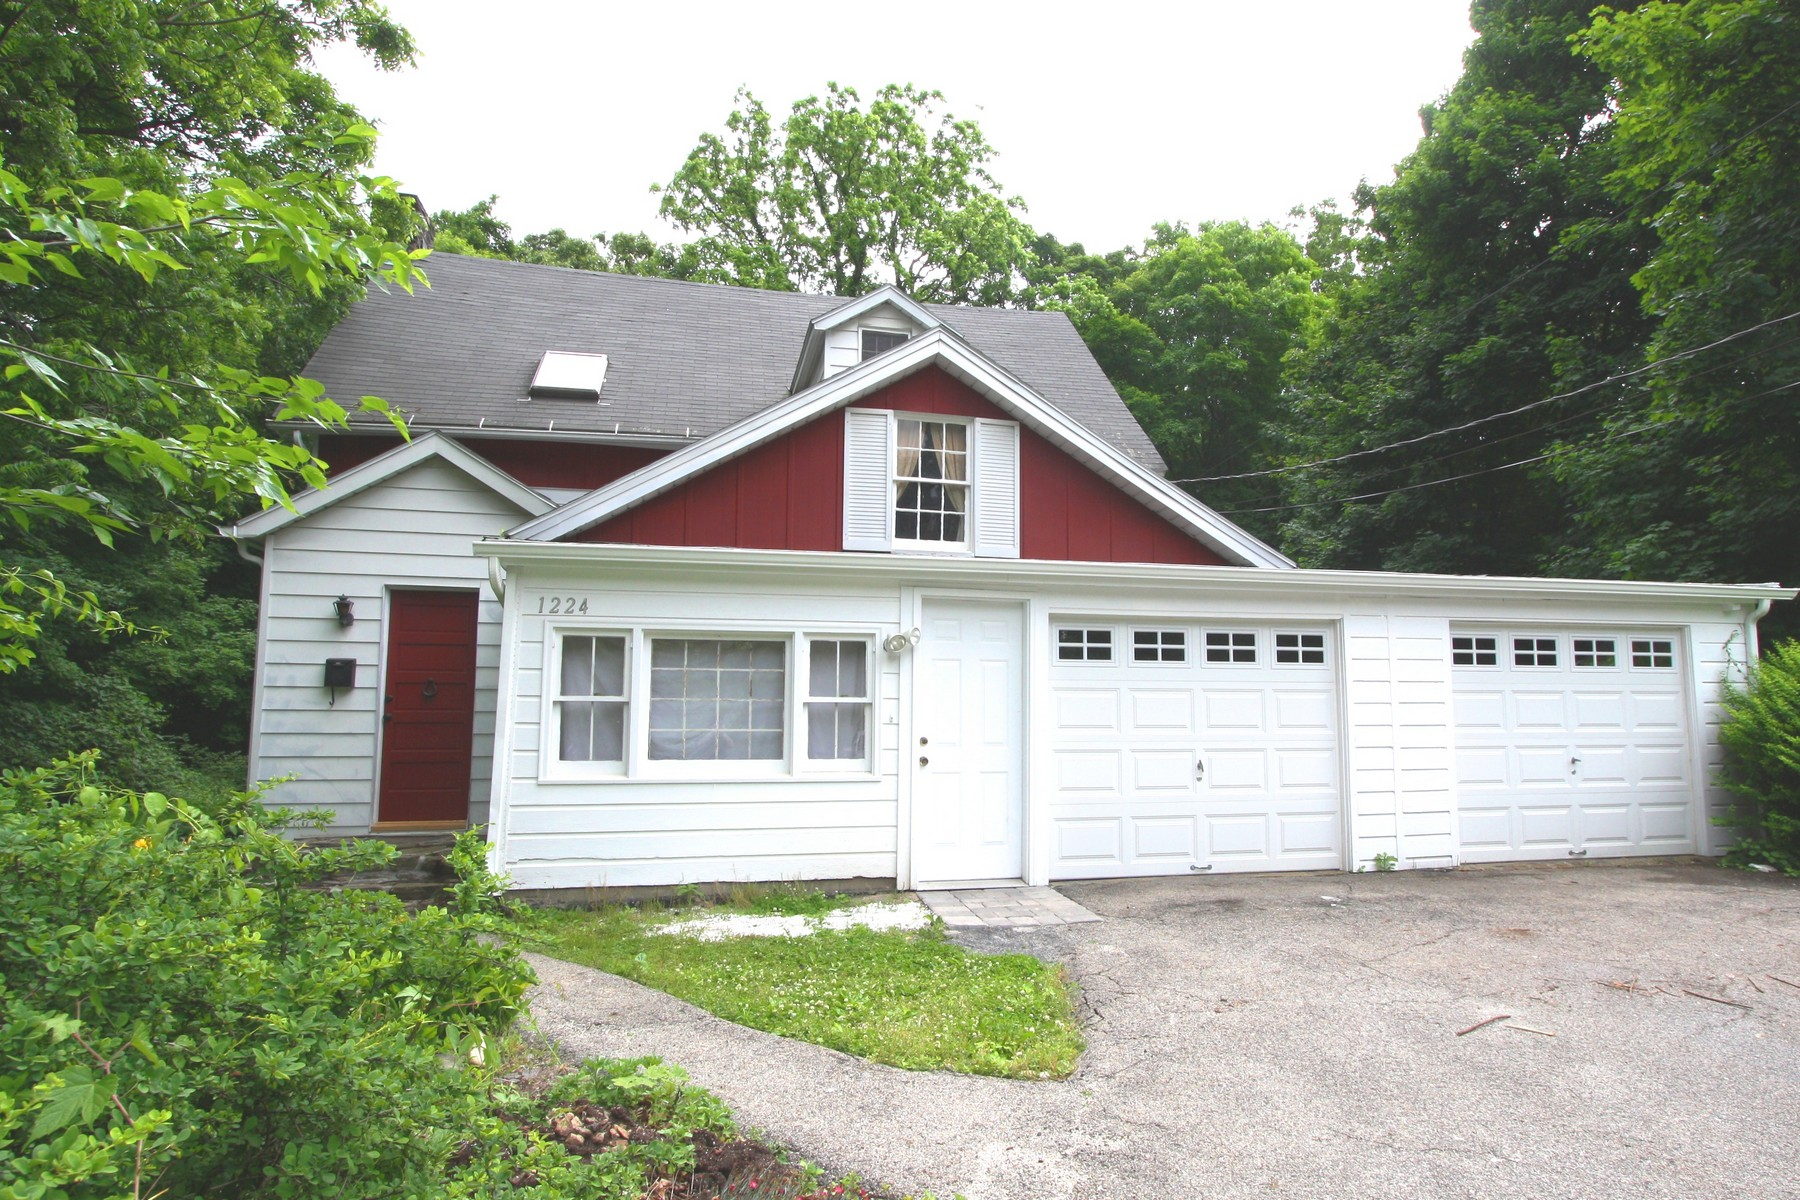 Single Family Homes for Active at Secluded Hilltop Charmer 1224 Seymour Lane Peekskill, New York 10566 United States